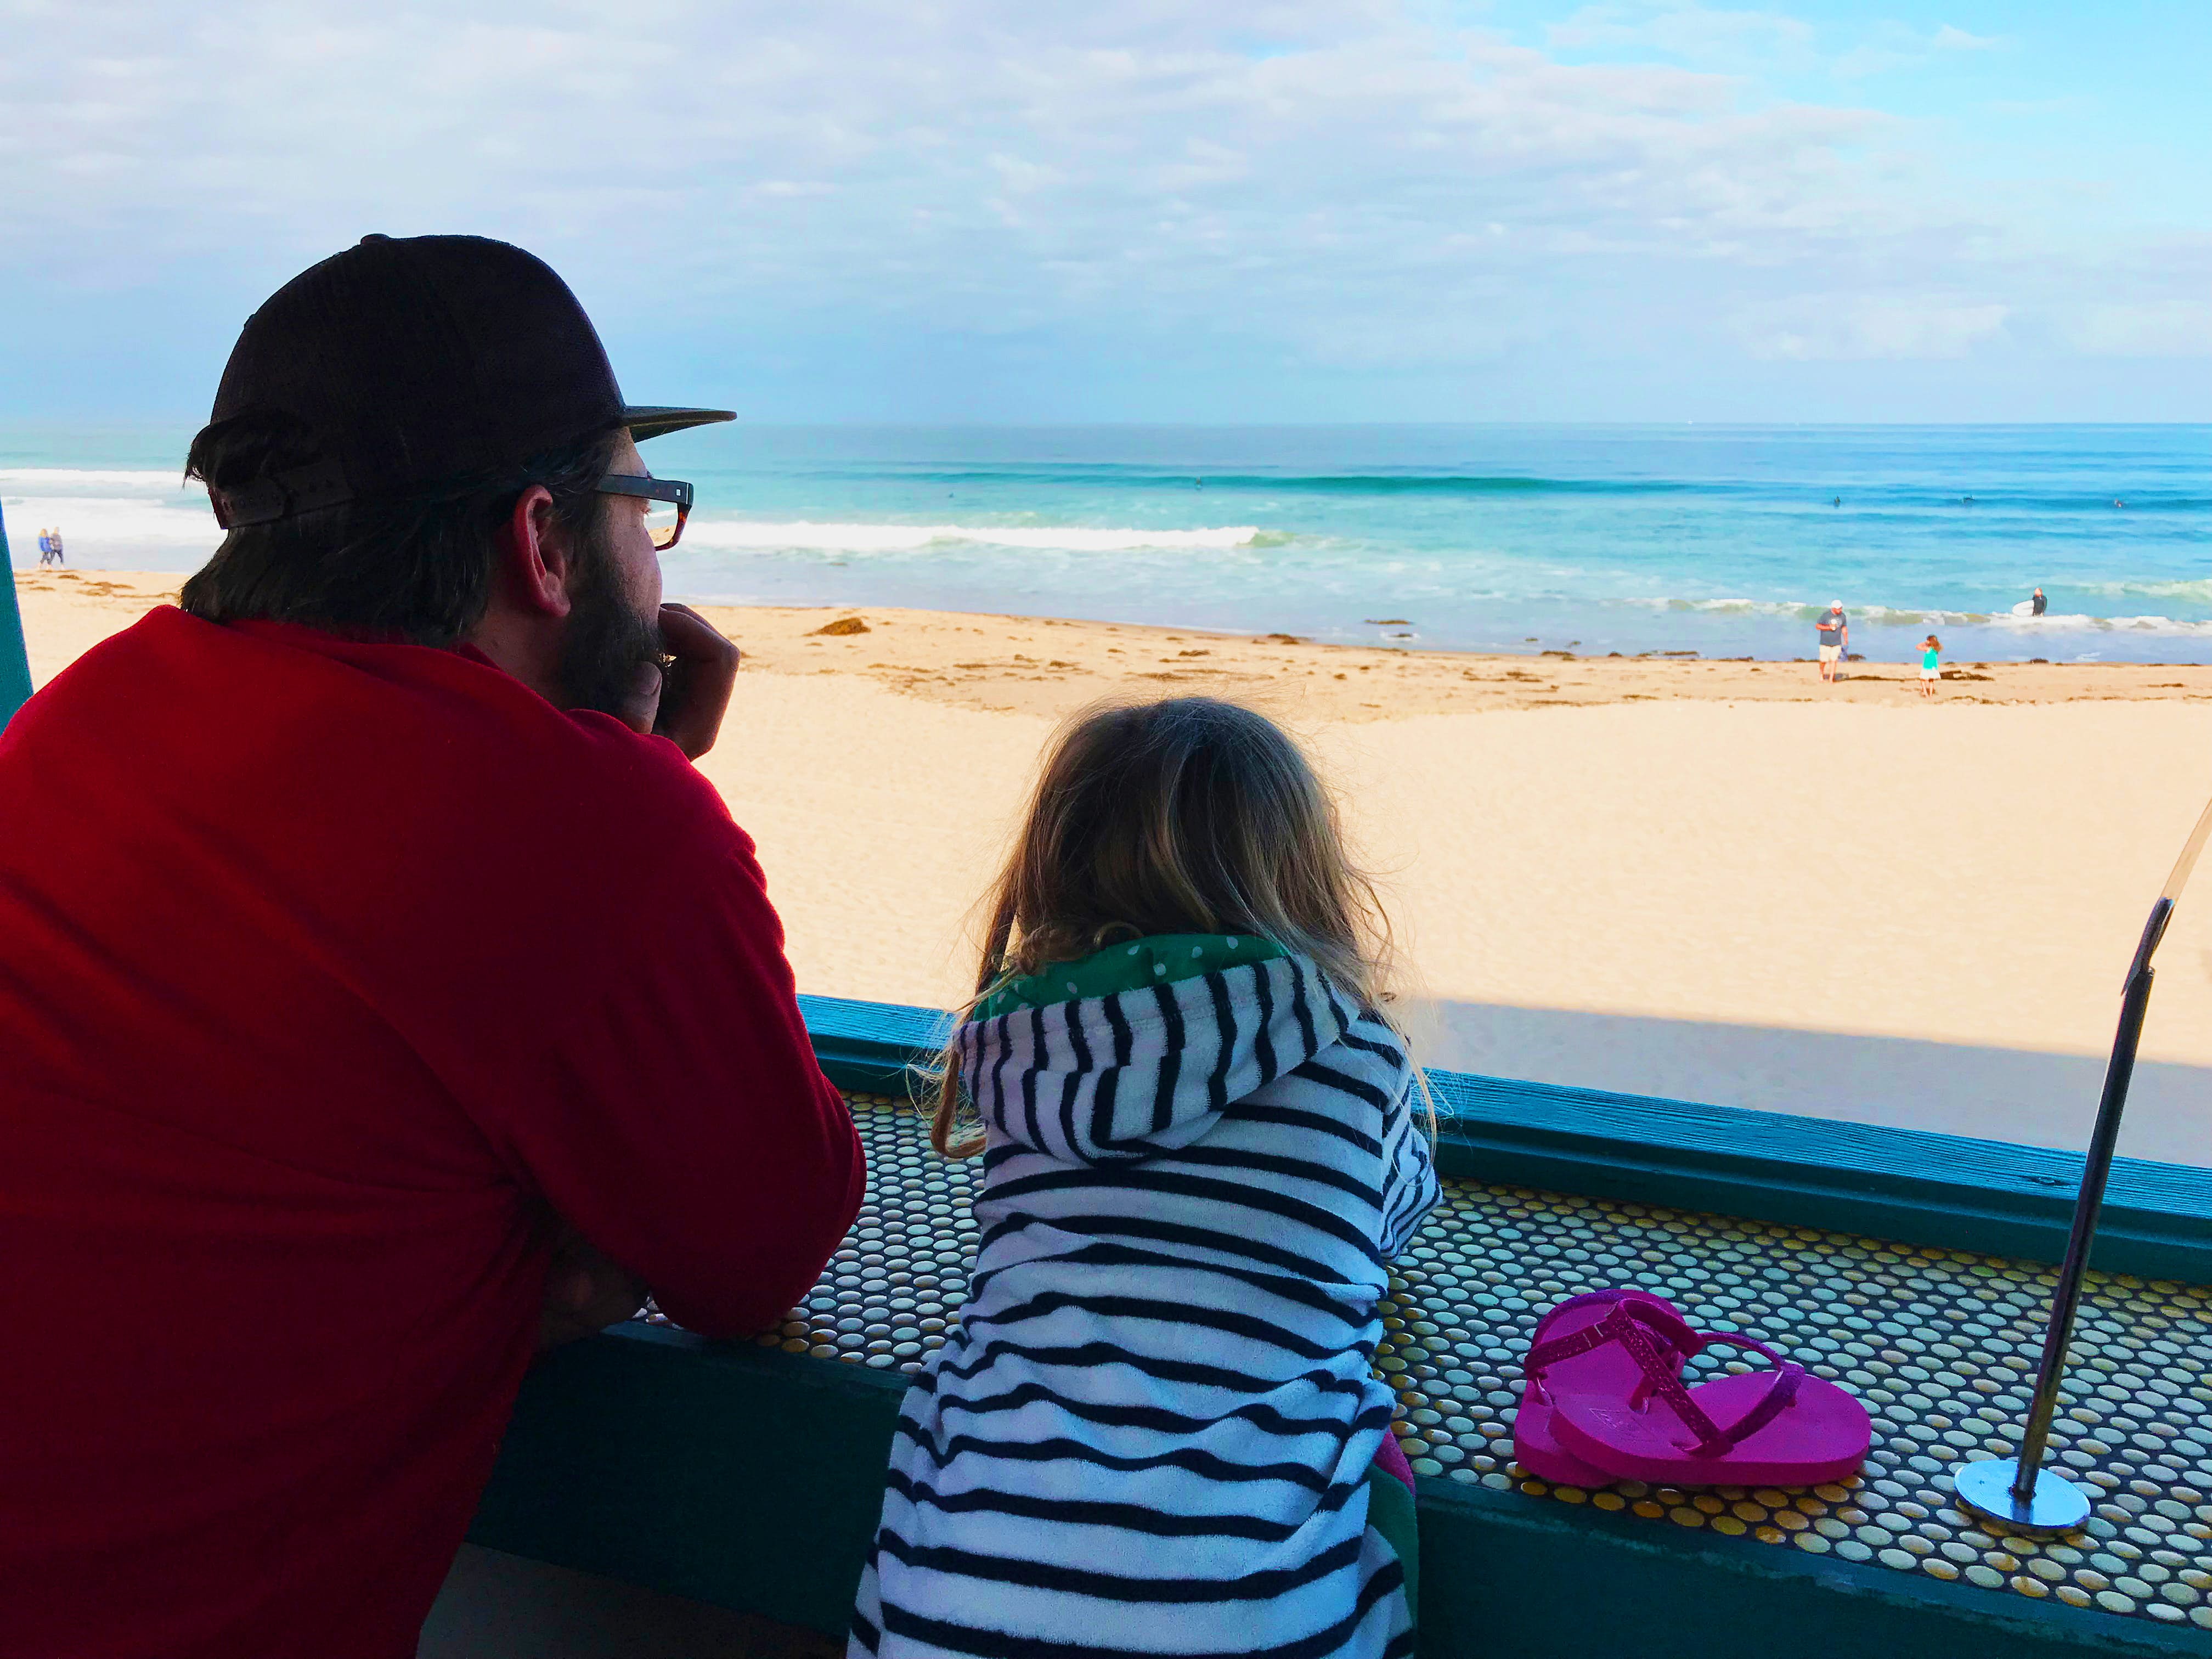 A man and his daughter watch surfers on the beach while waiting for food © Sarah Stocking / Lonely Planet